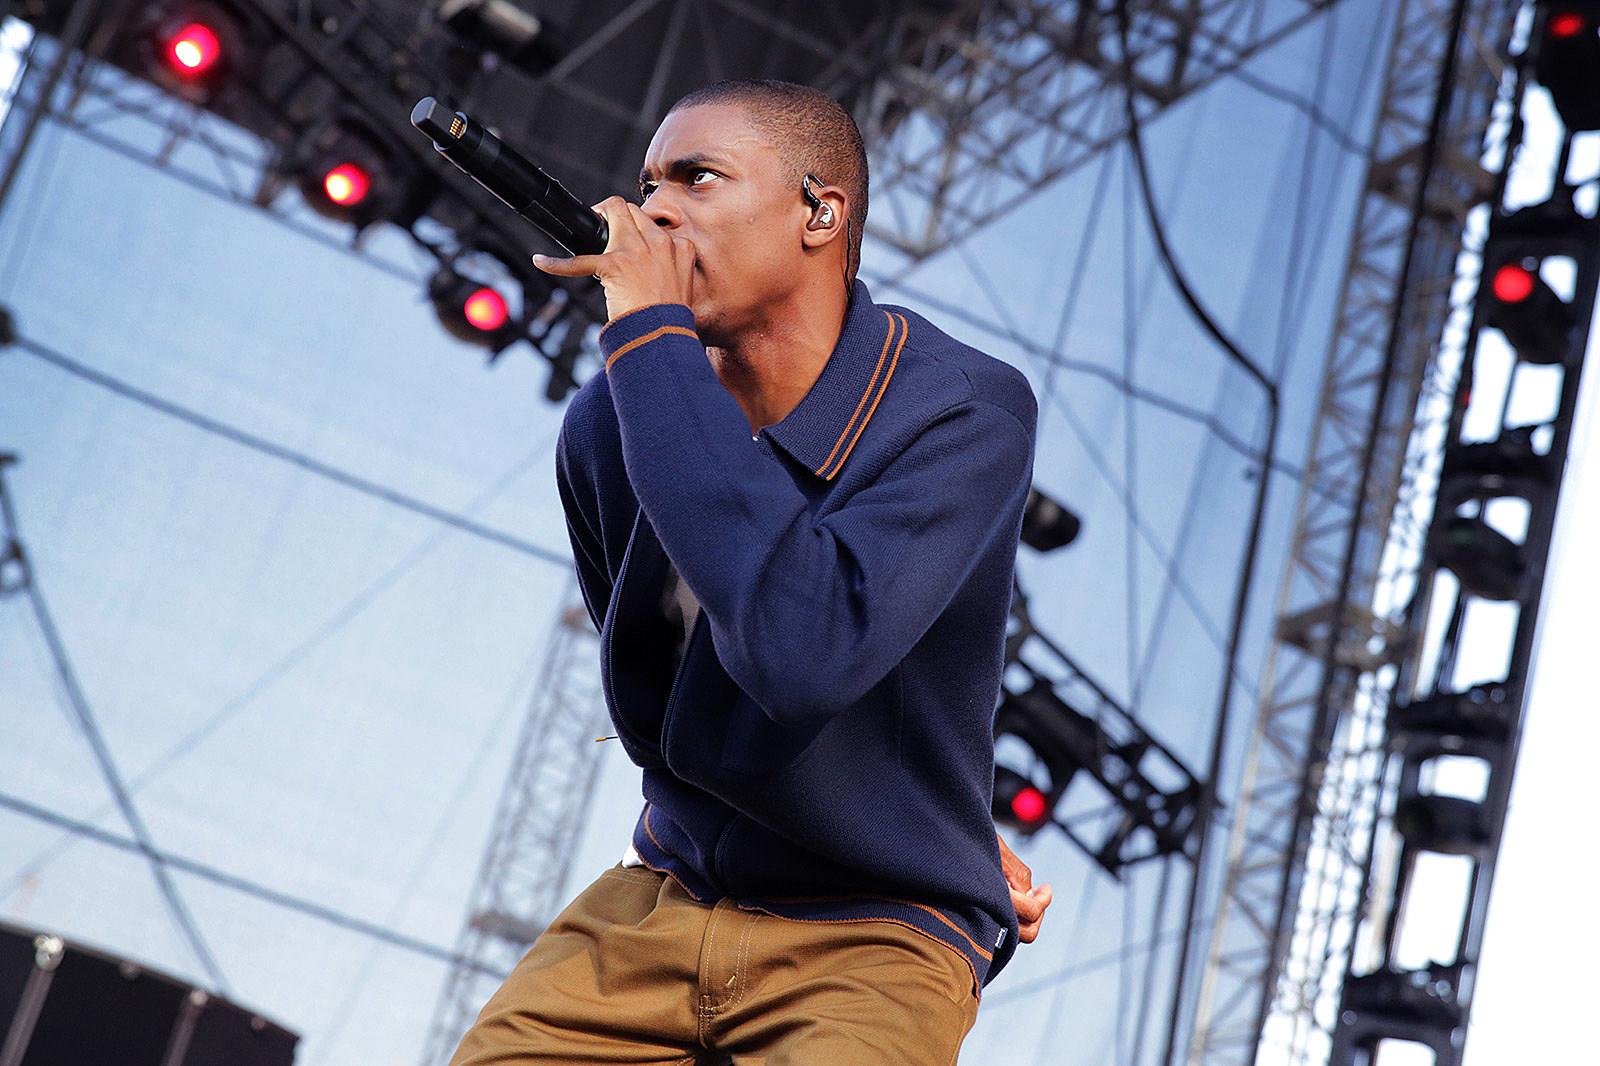 Vince Staples at FYF Fest 2016 - Saturday